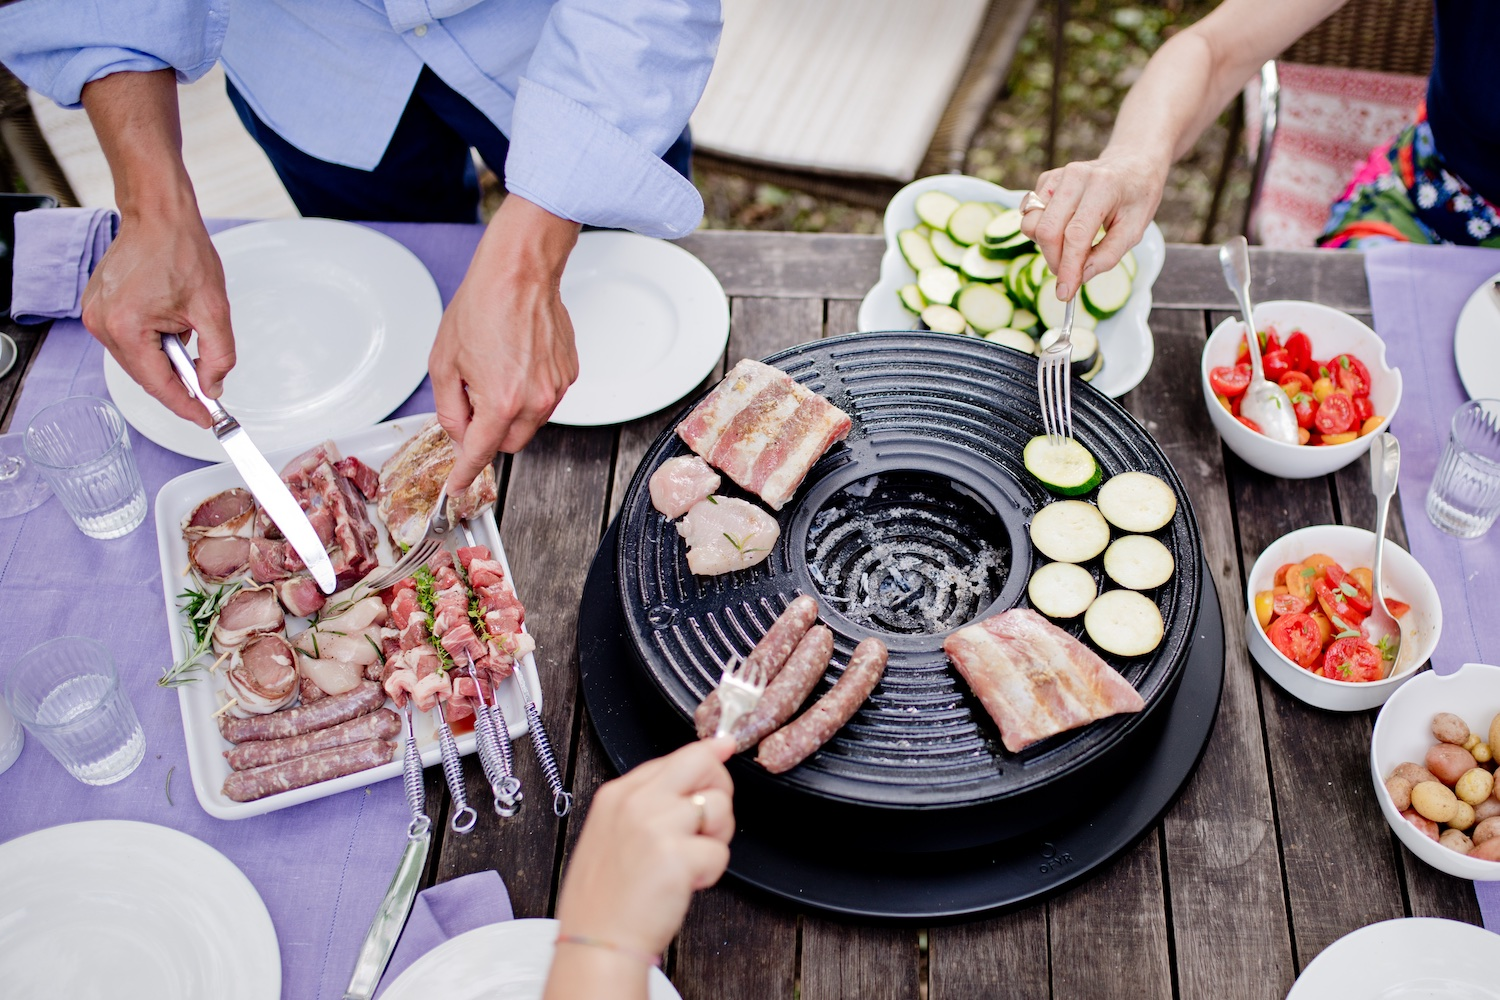 Outdoor summer | barbecue fun at the table with table grill OFYR Tabl'O